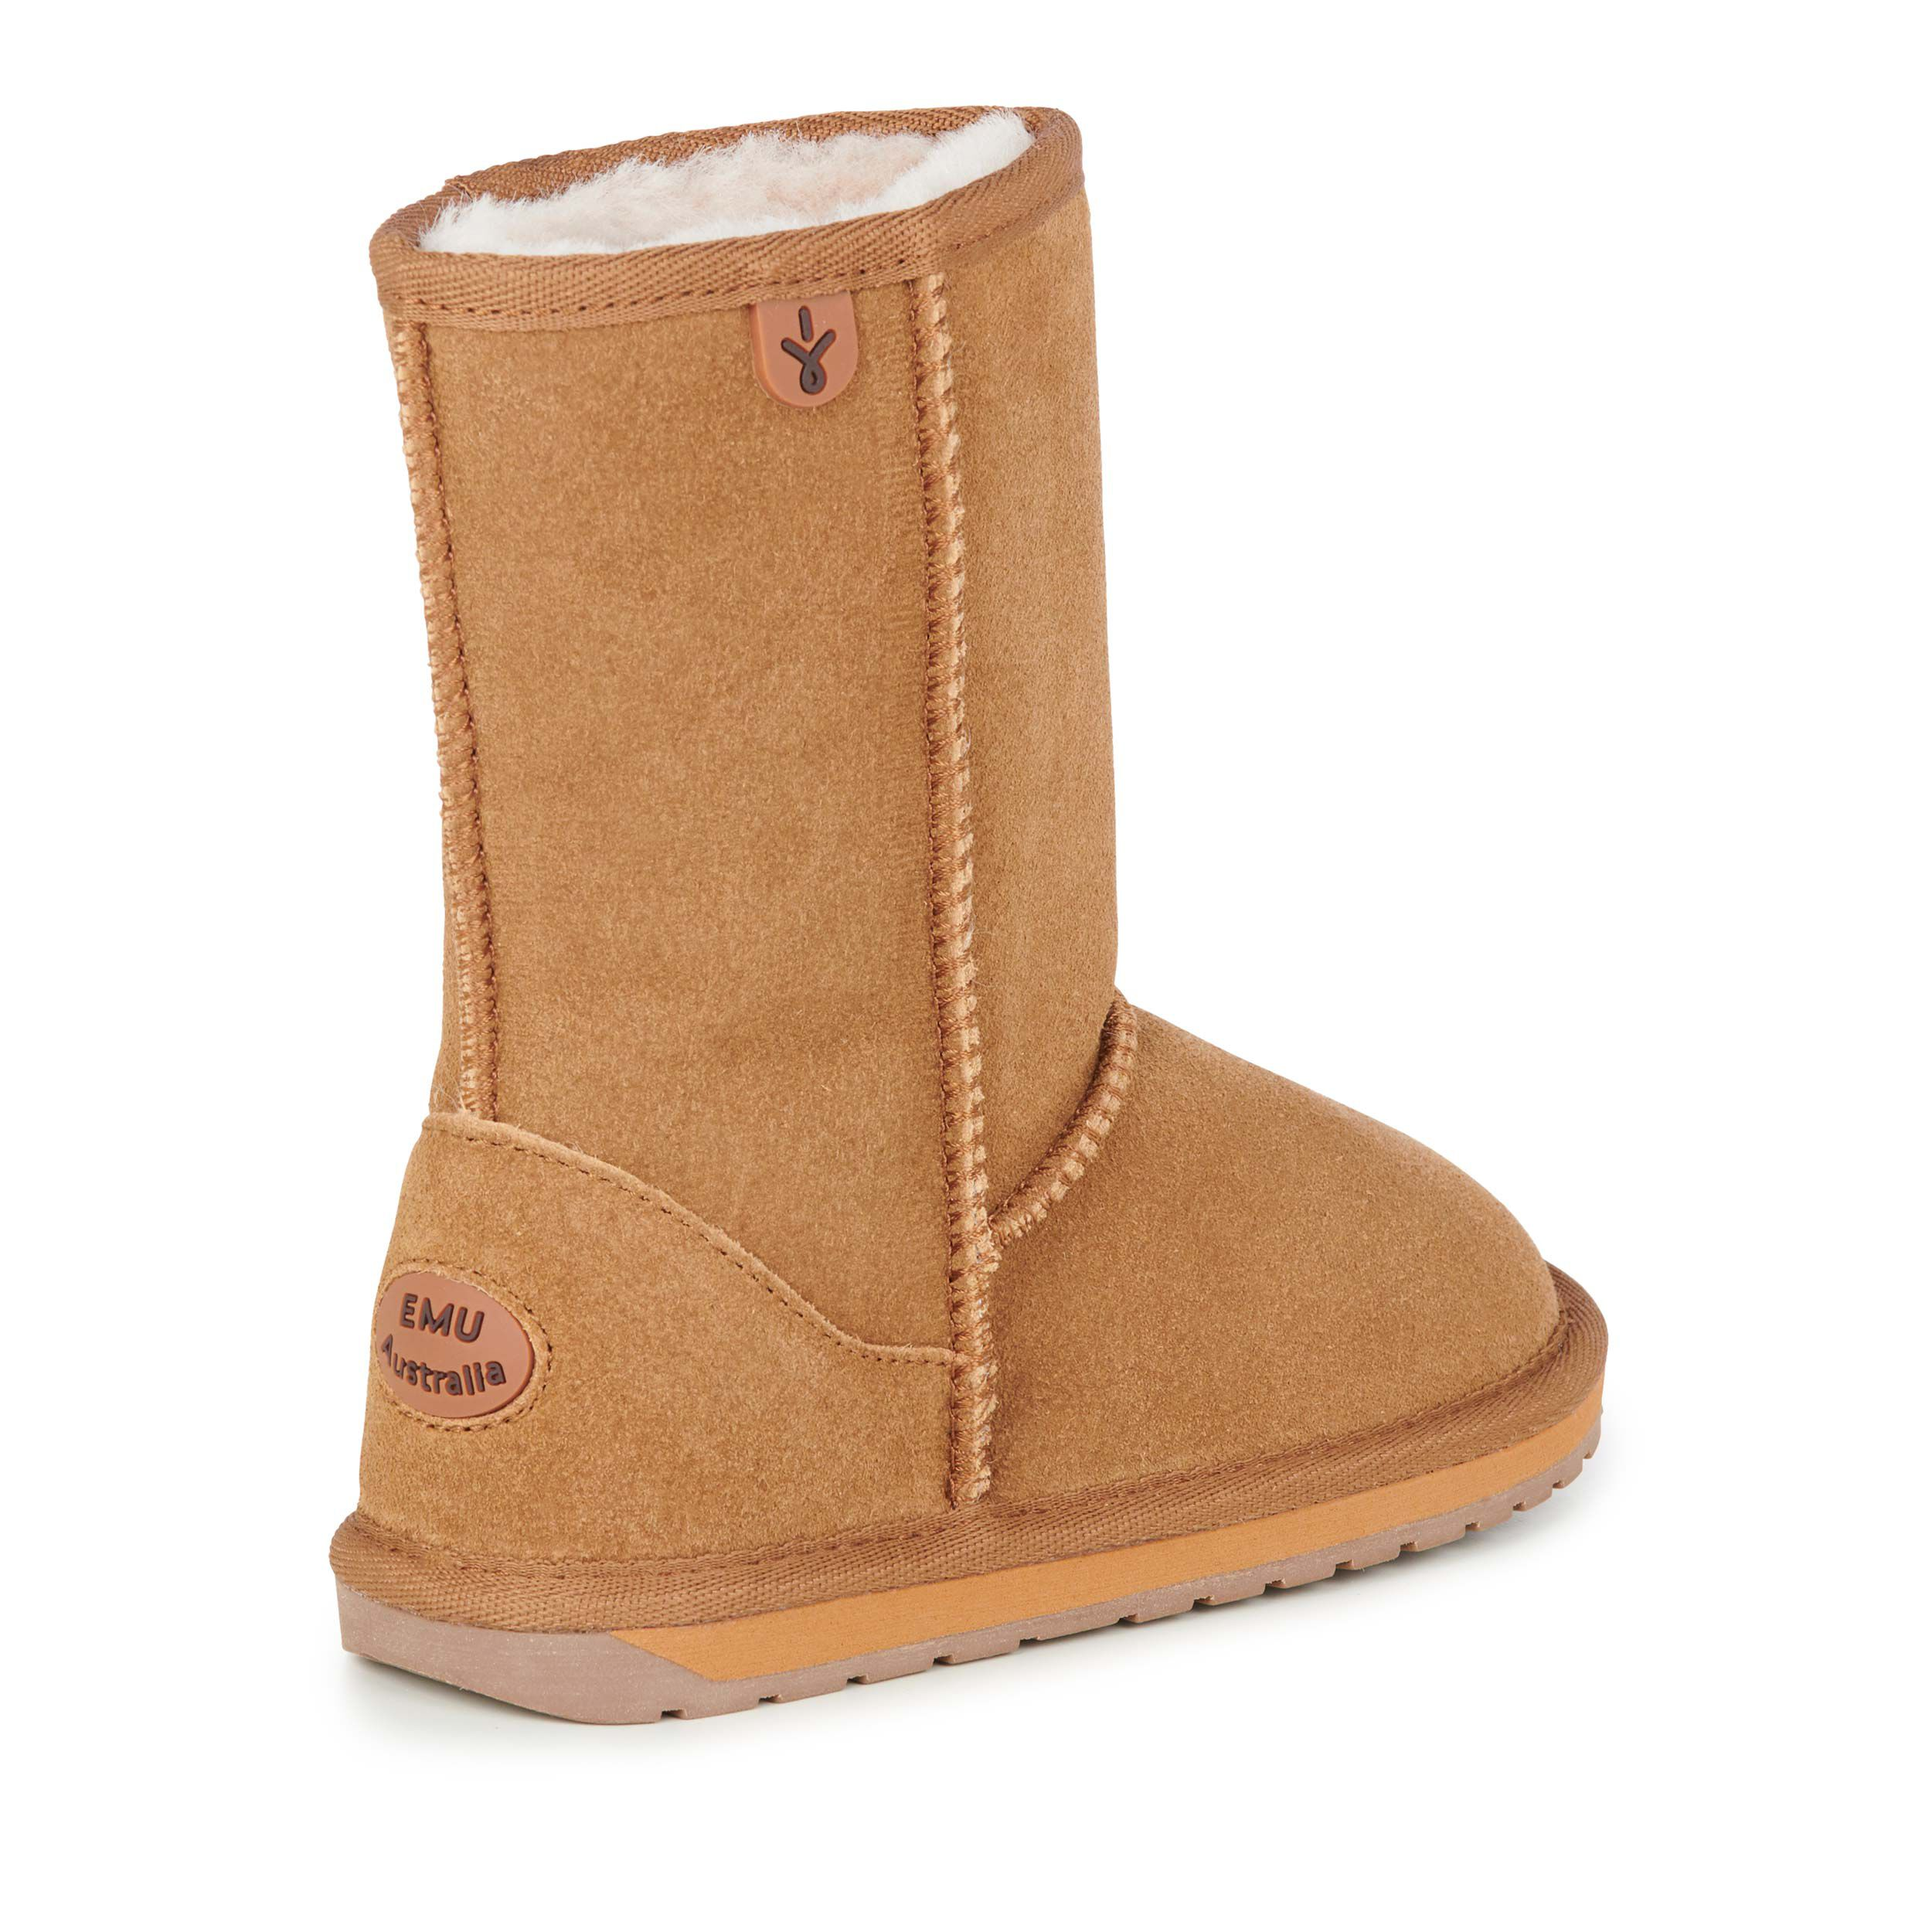 Bottes EMU Australia Wallaby LO Chestnut MIdyr5